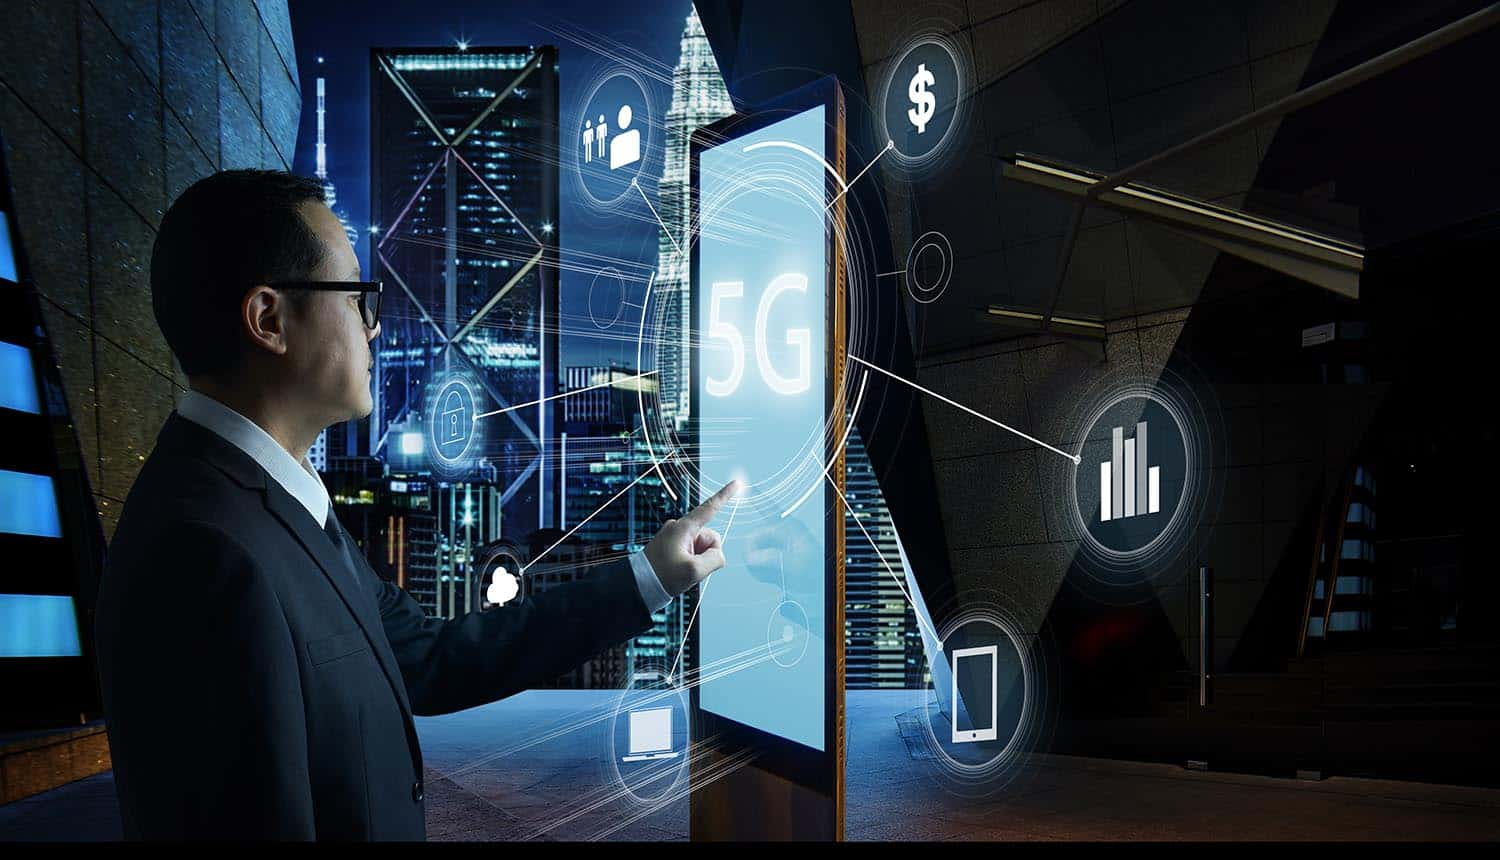 Businessman touching internet of things in 5G network showing the push of 5G IoT market towards edge computing